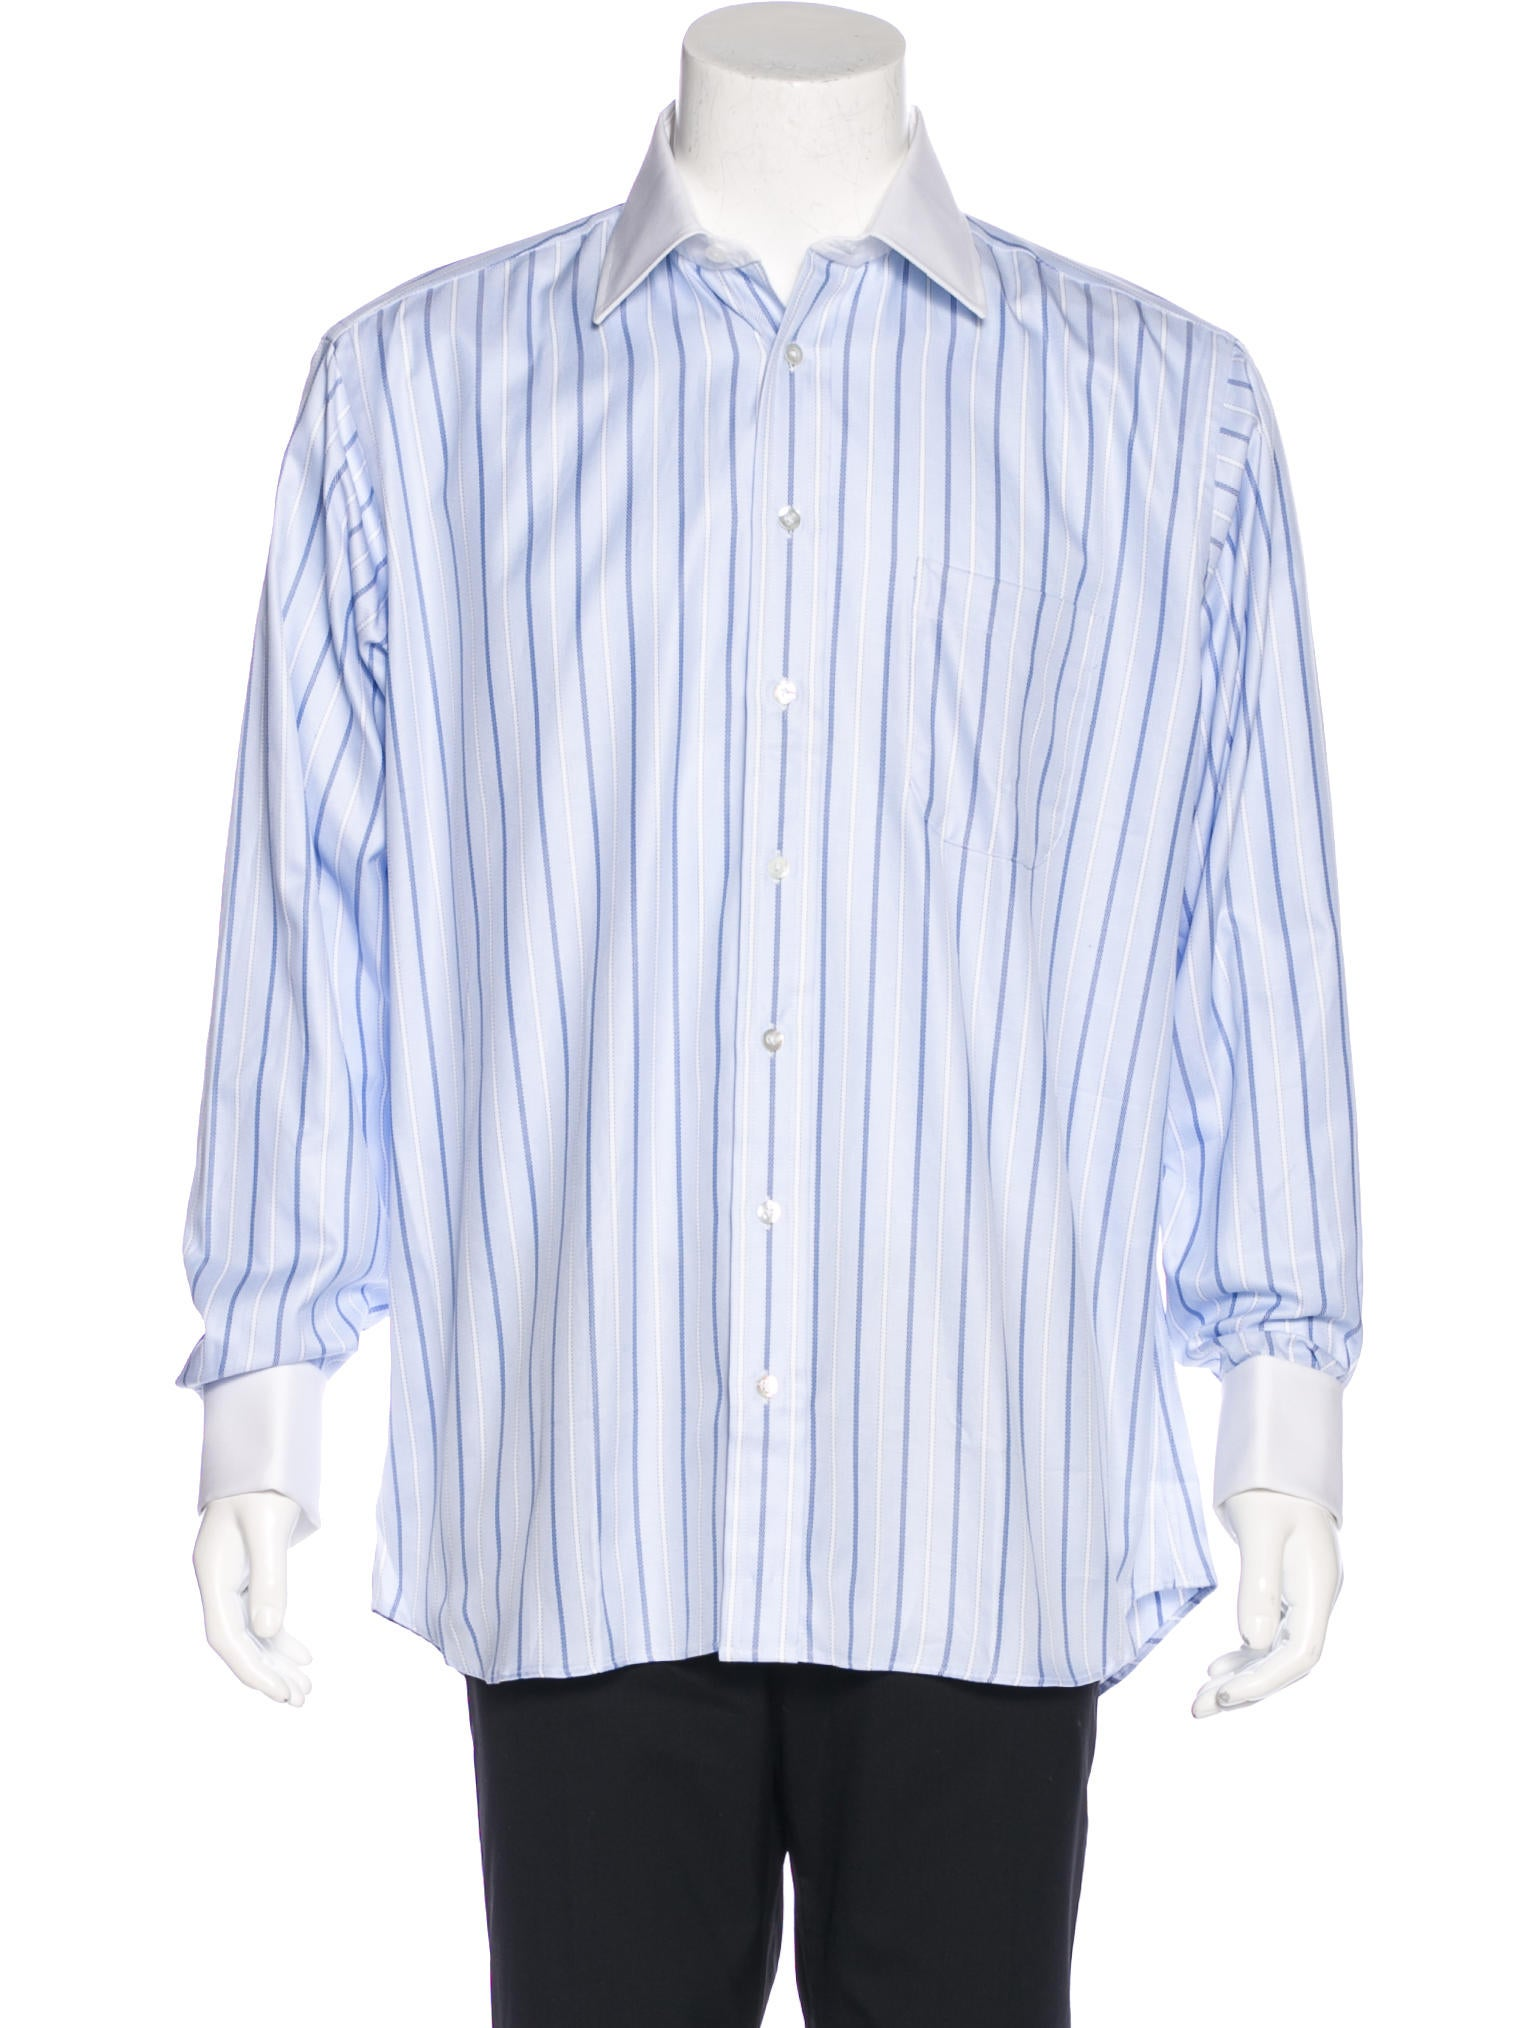 Mens Burberry Dress Shirt Sale Chad Crowley Productions